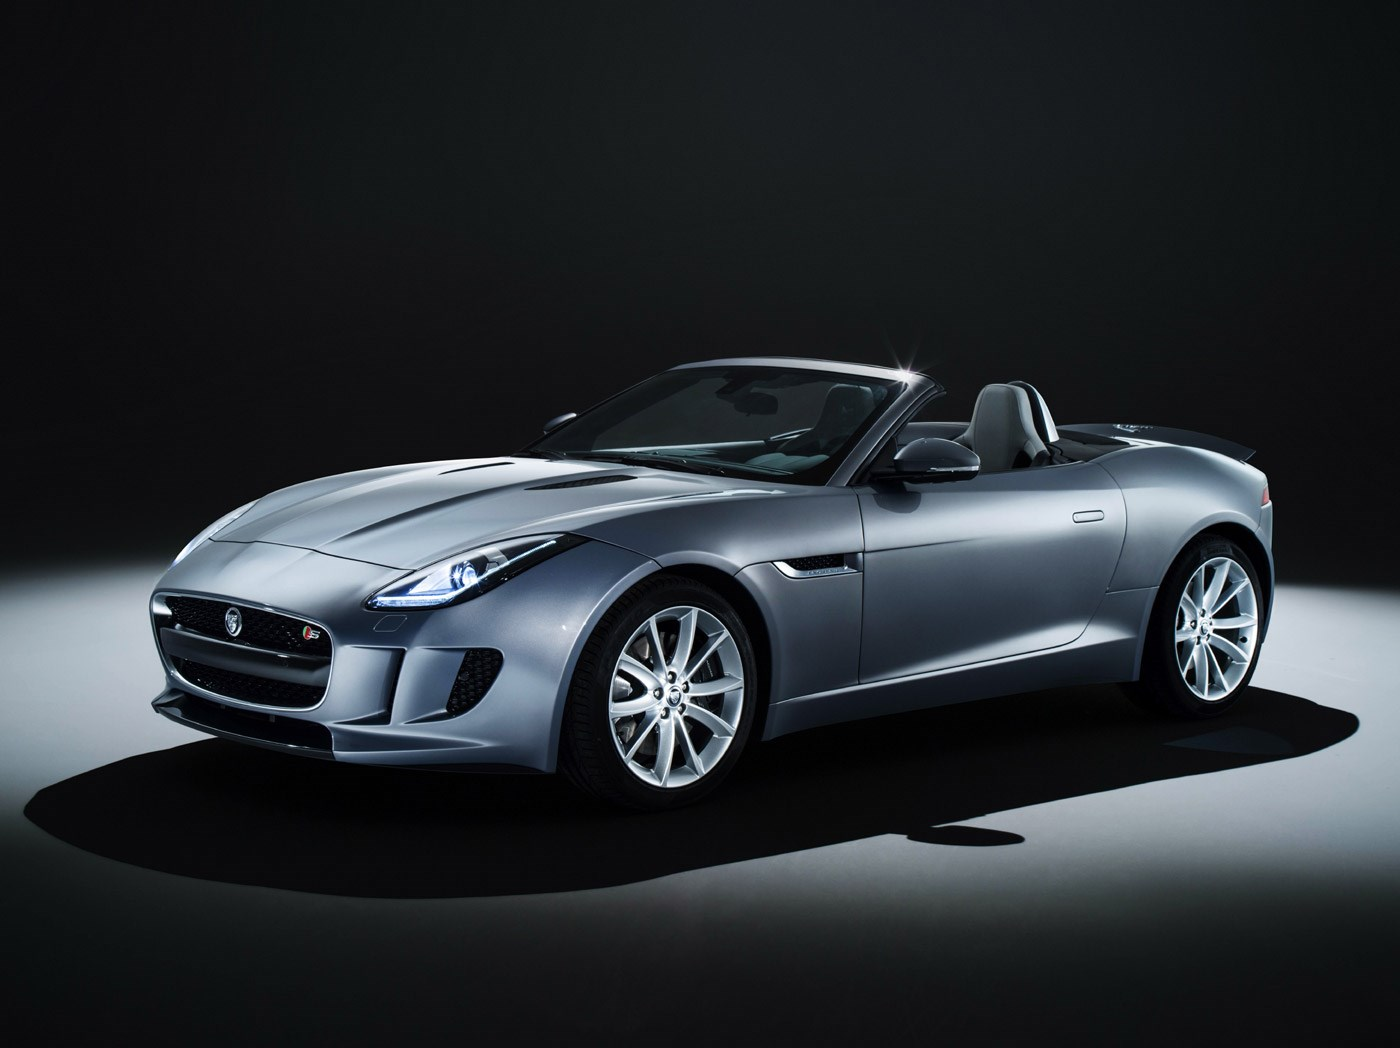 Jaguar F-TYPE convertible studio